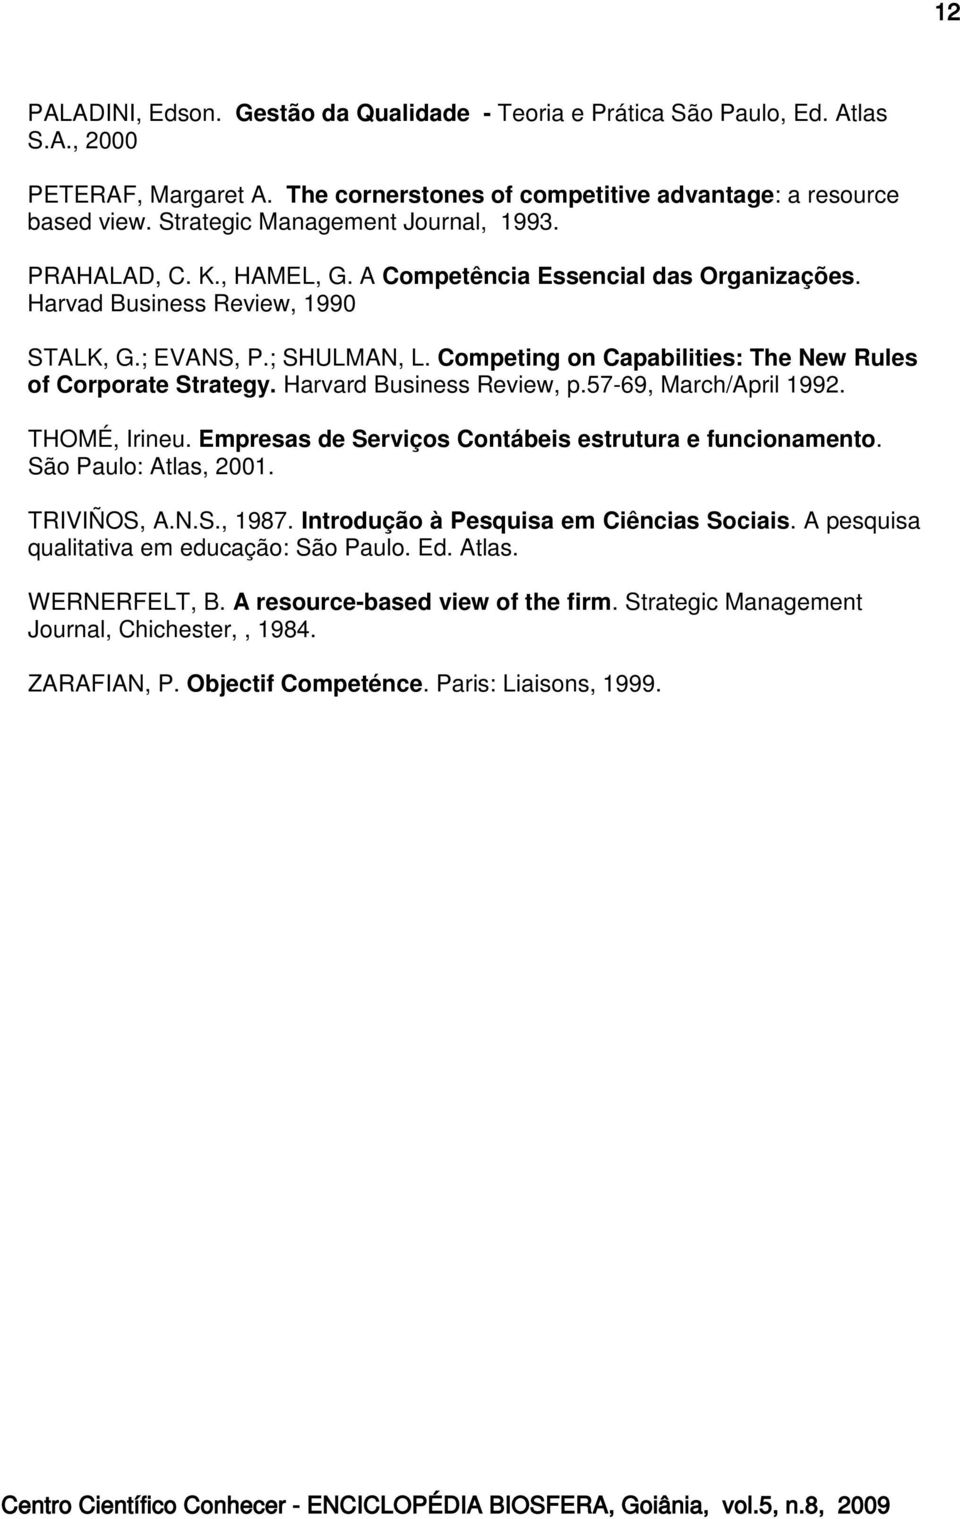 Competing on Capabilities: The New Rules of Corporate Strategy. Harvard Business Review, p.57-69, March/April 1992. THOMÉ, Irineu. Empresas de Serviços Contábeis estrutura e funcionamento.